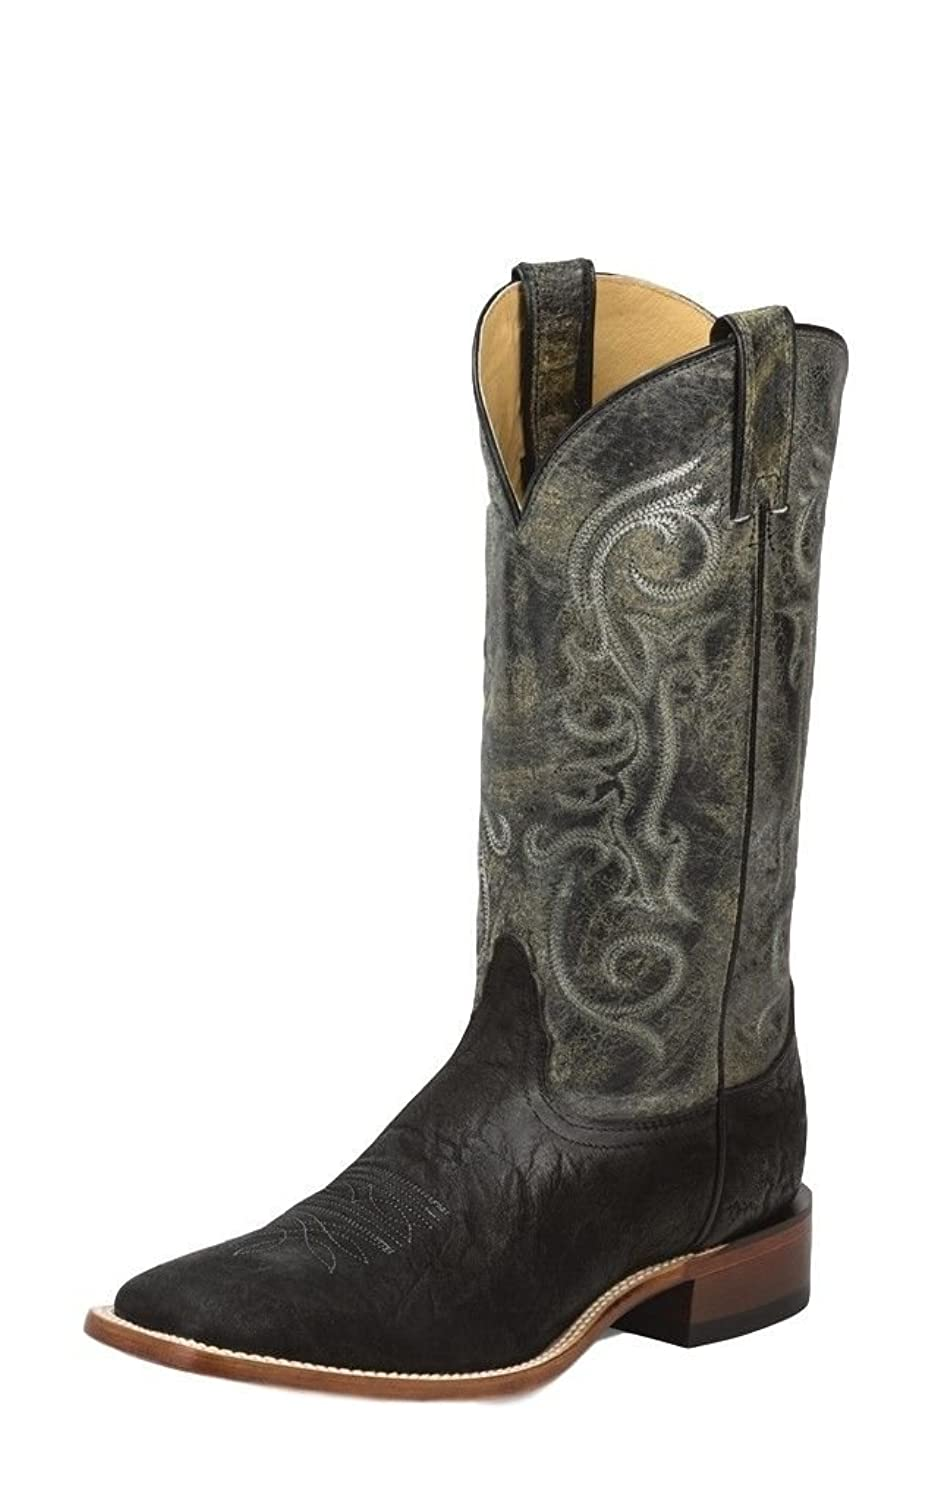 outlet Nocona Men's Elephant Grain Cowboy Boot Square Toe - Nb4050 ...